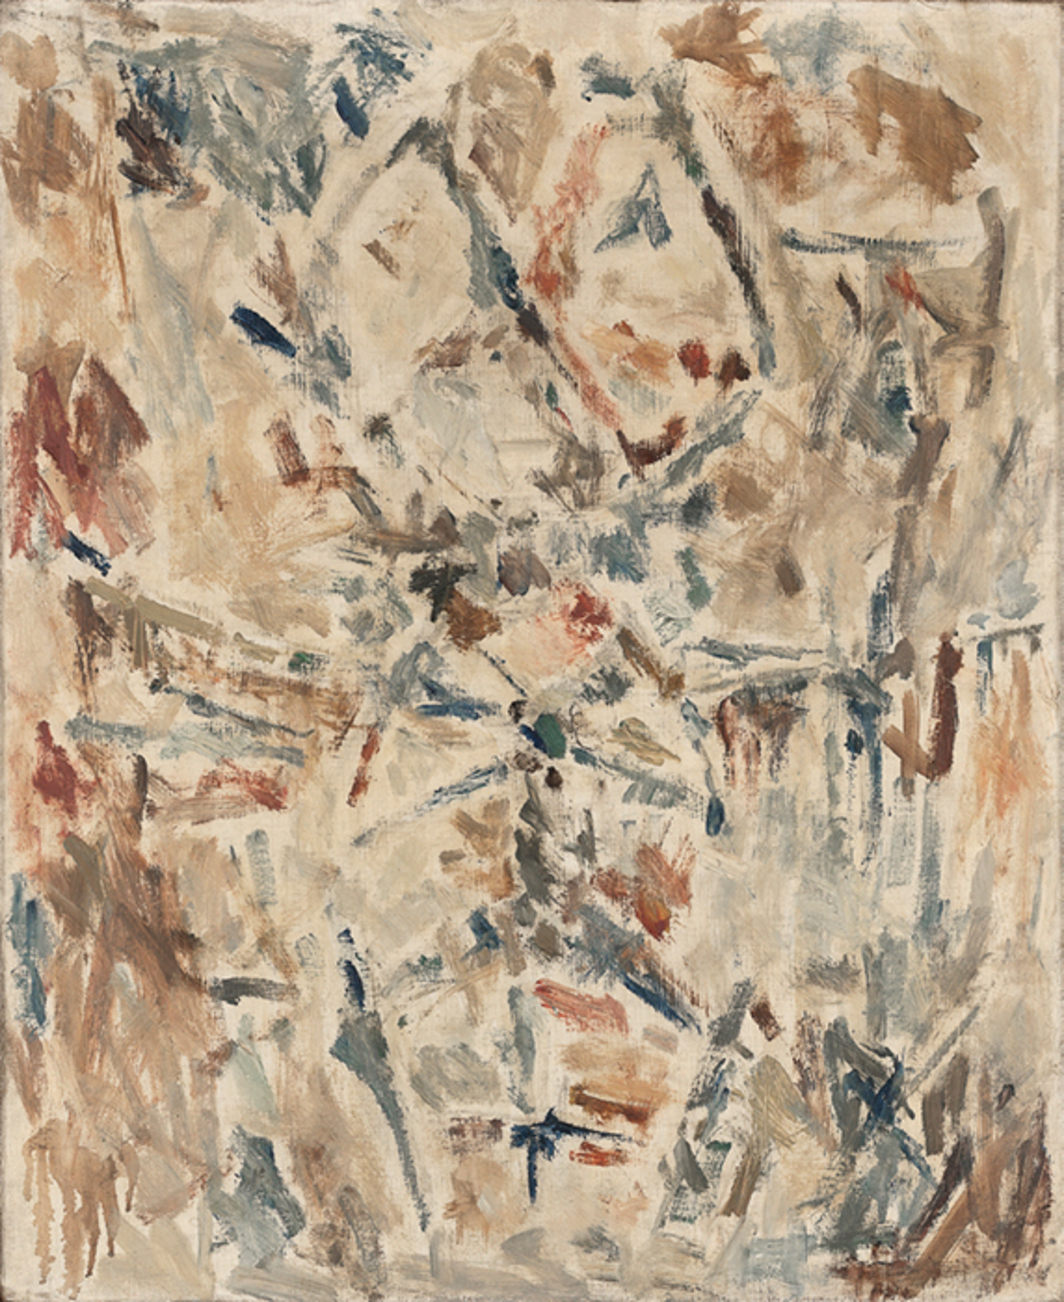 "Ernest Mancoba, Untitled (2), 1963, oil pastel on canvas, 24 × 19 1/2"". © The Estate of Ernest Mancoba and Galerie Mikael Andersen."